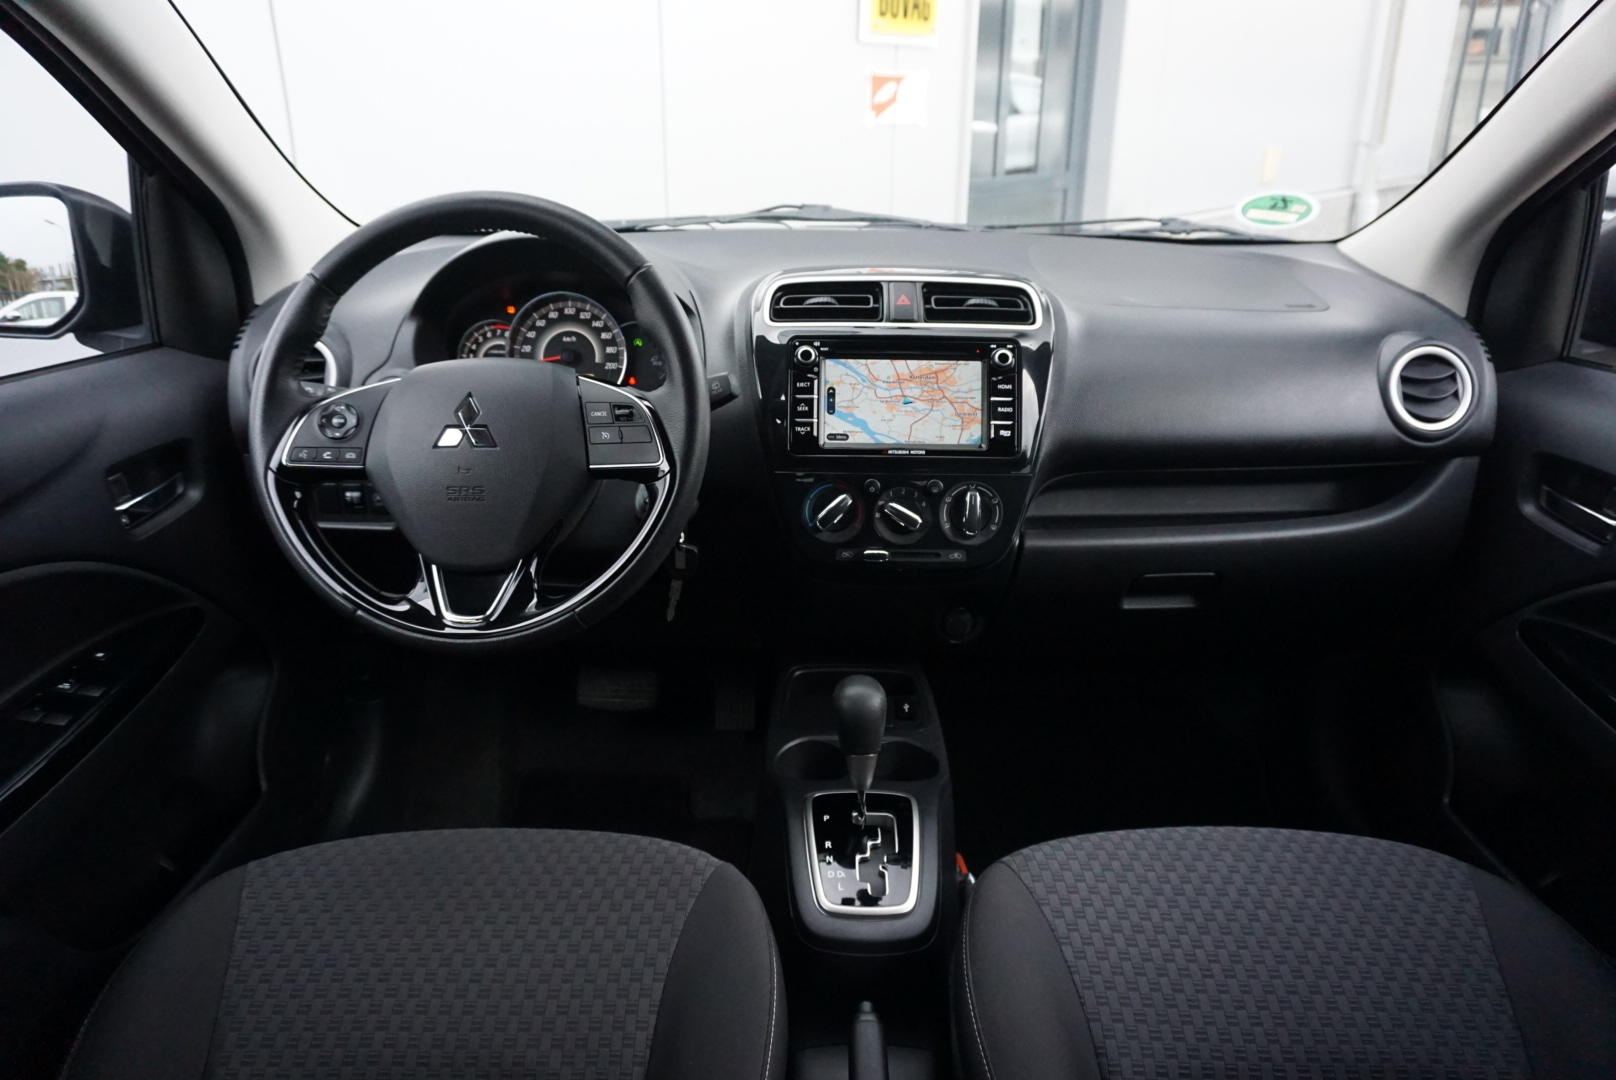 Mitsubishi Space Star 1.2 Connect Pro full